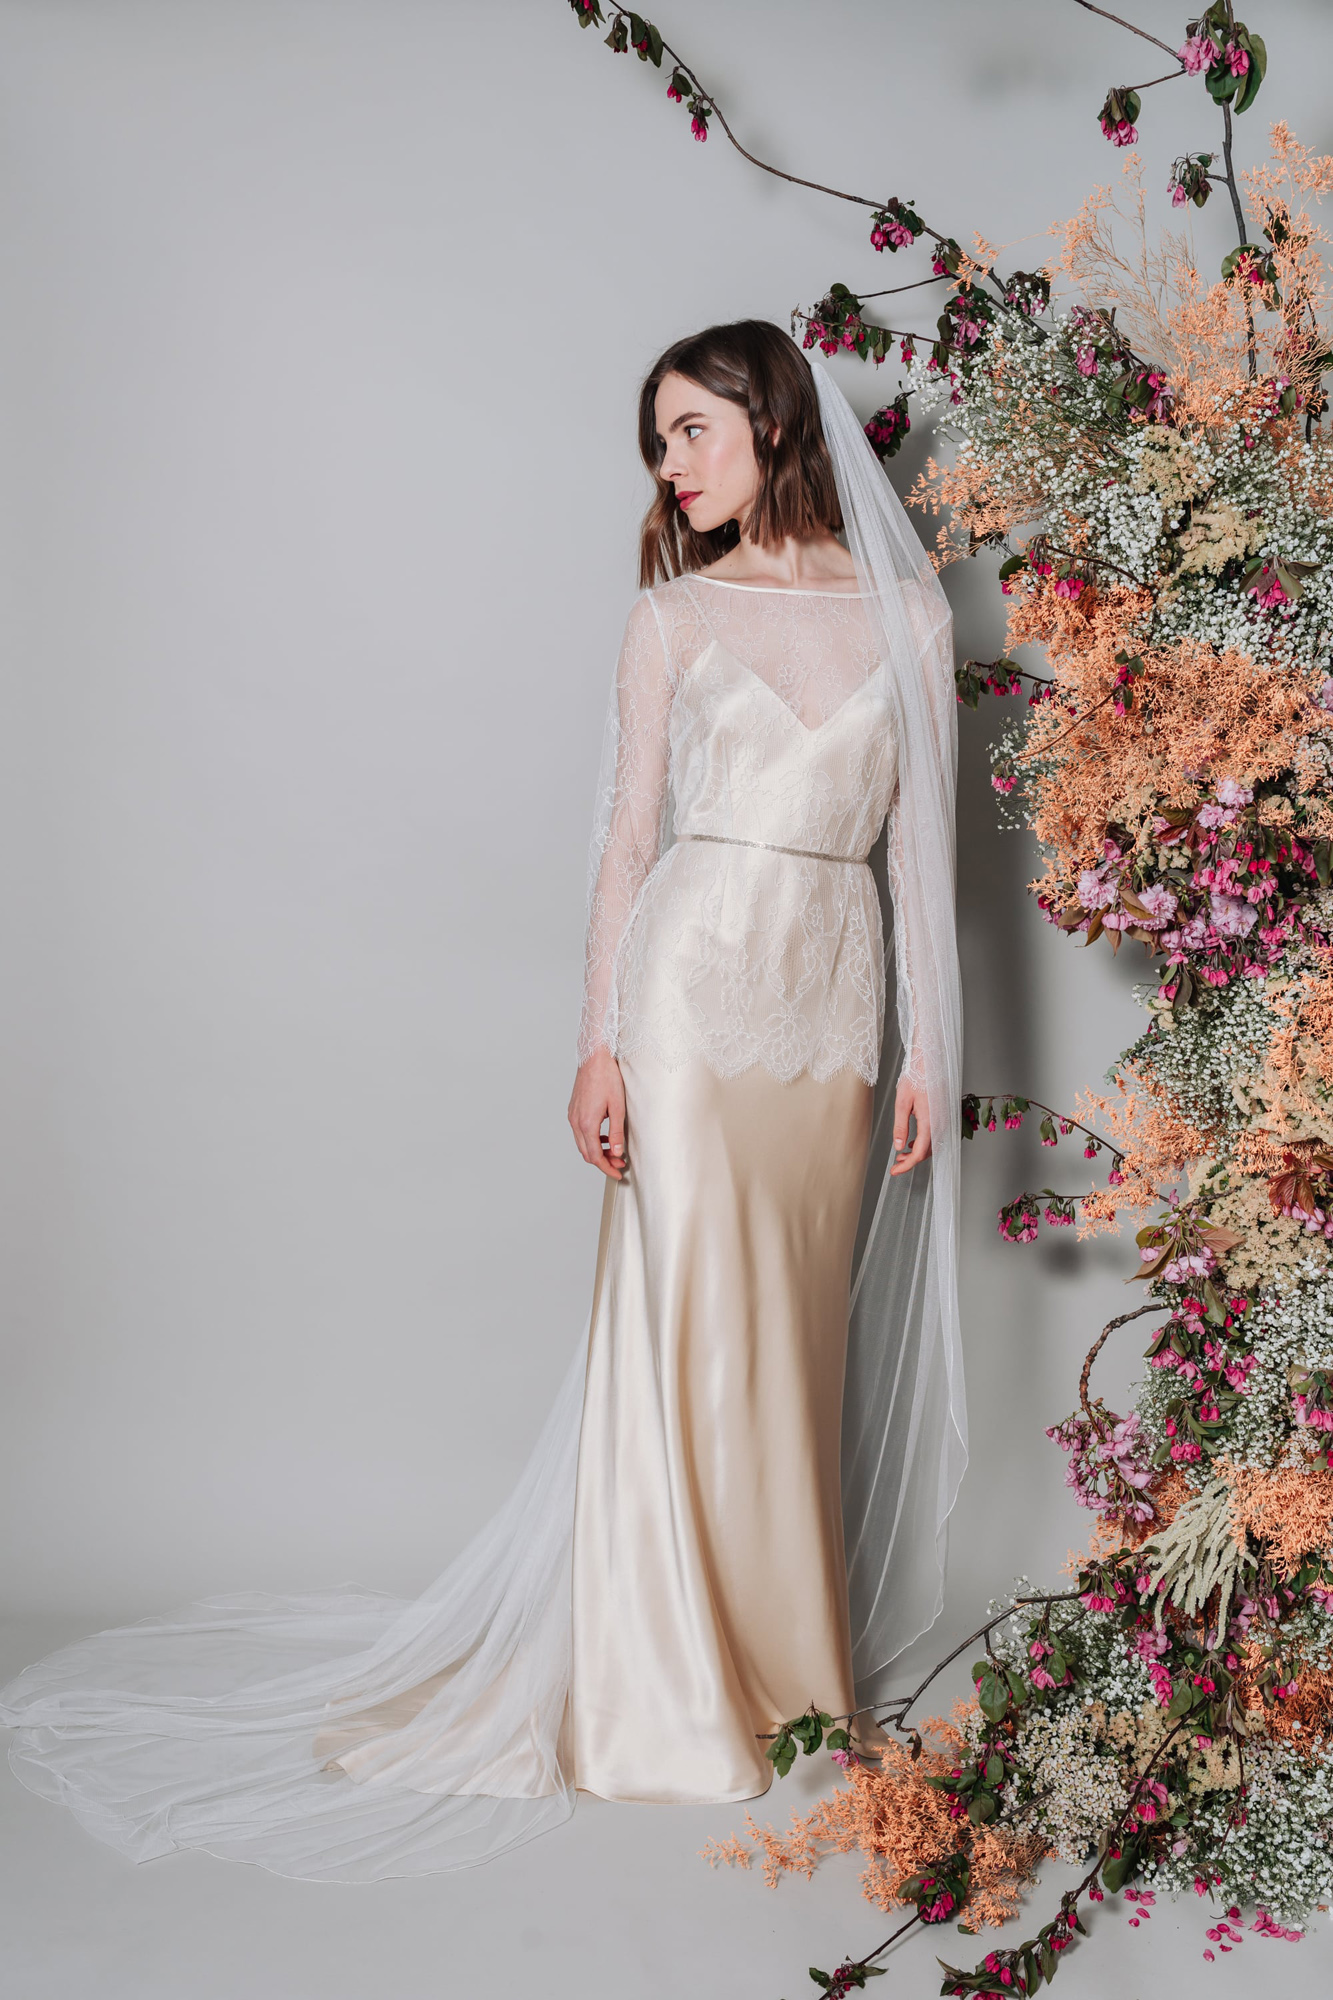 Kate-Beaumont-Sheffield-Thistle-Bridal-Separates-Two-Piece-Lace-Silk-Wedding-Gown-13.jpg